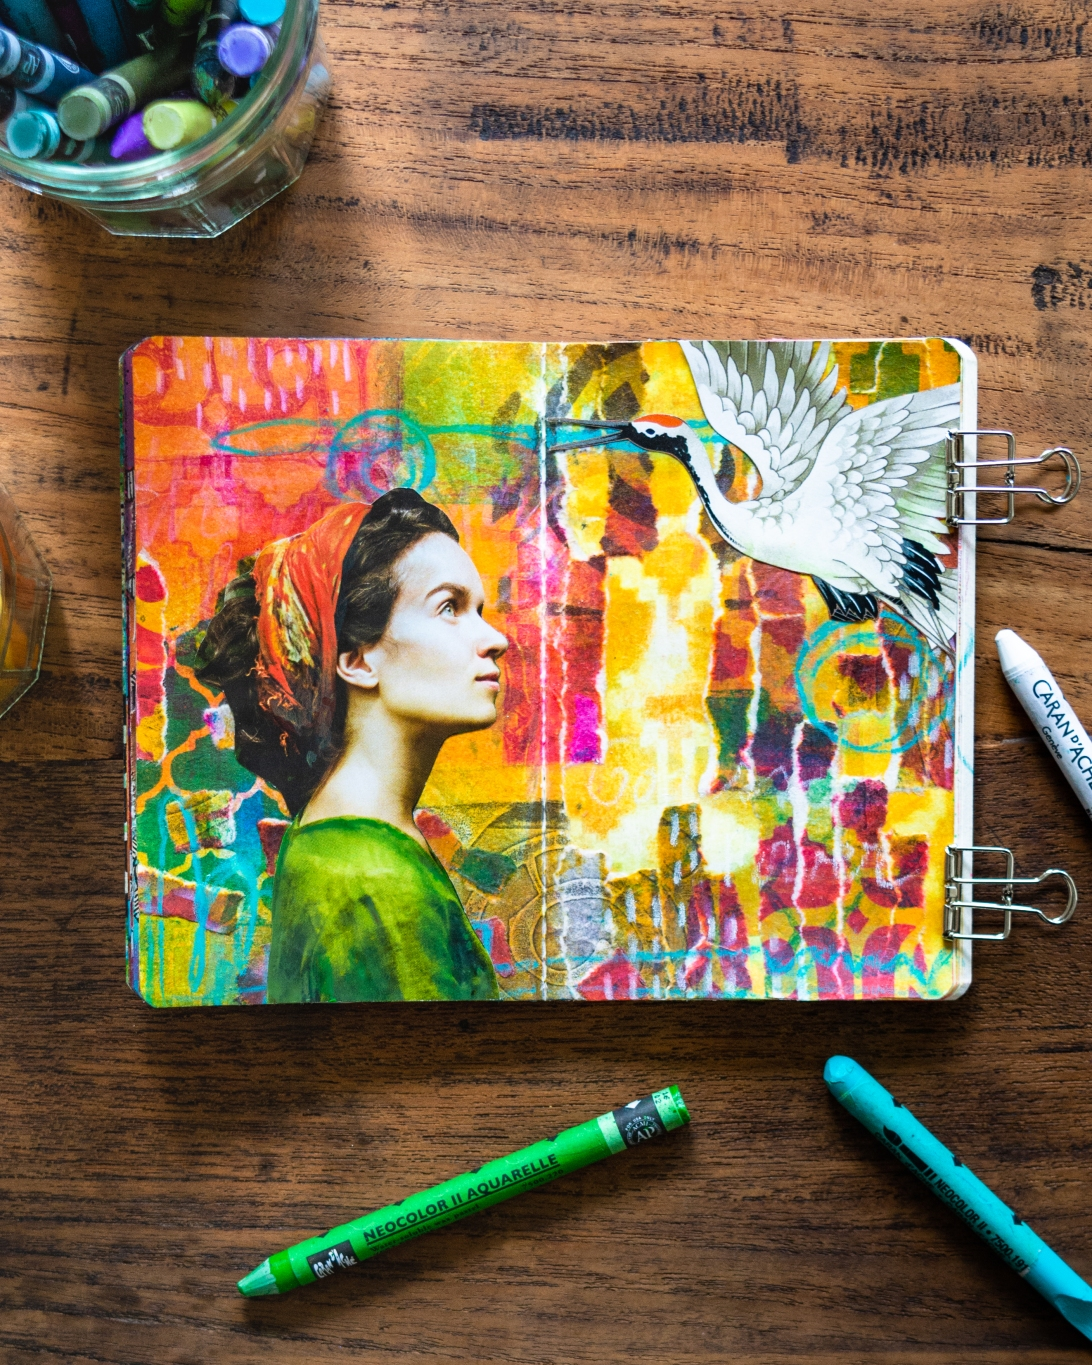 MArsha Valk | Inspired by: The Stencilfied Journal